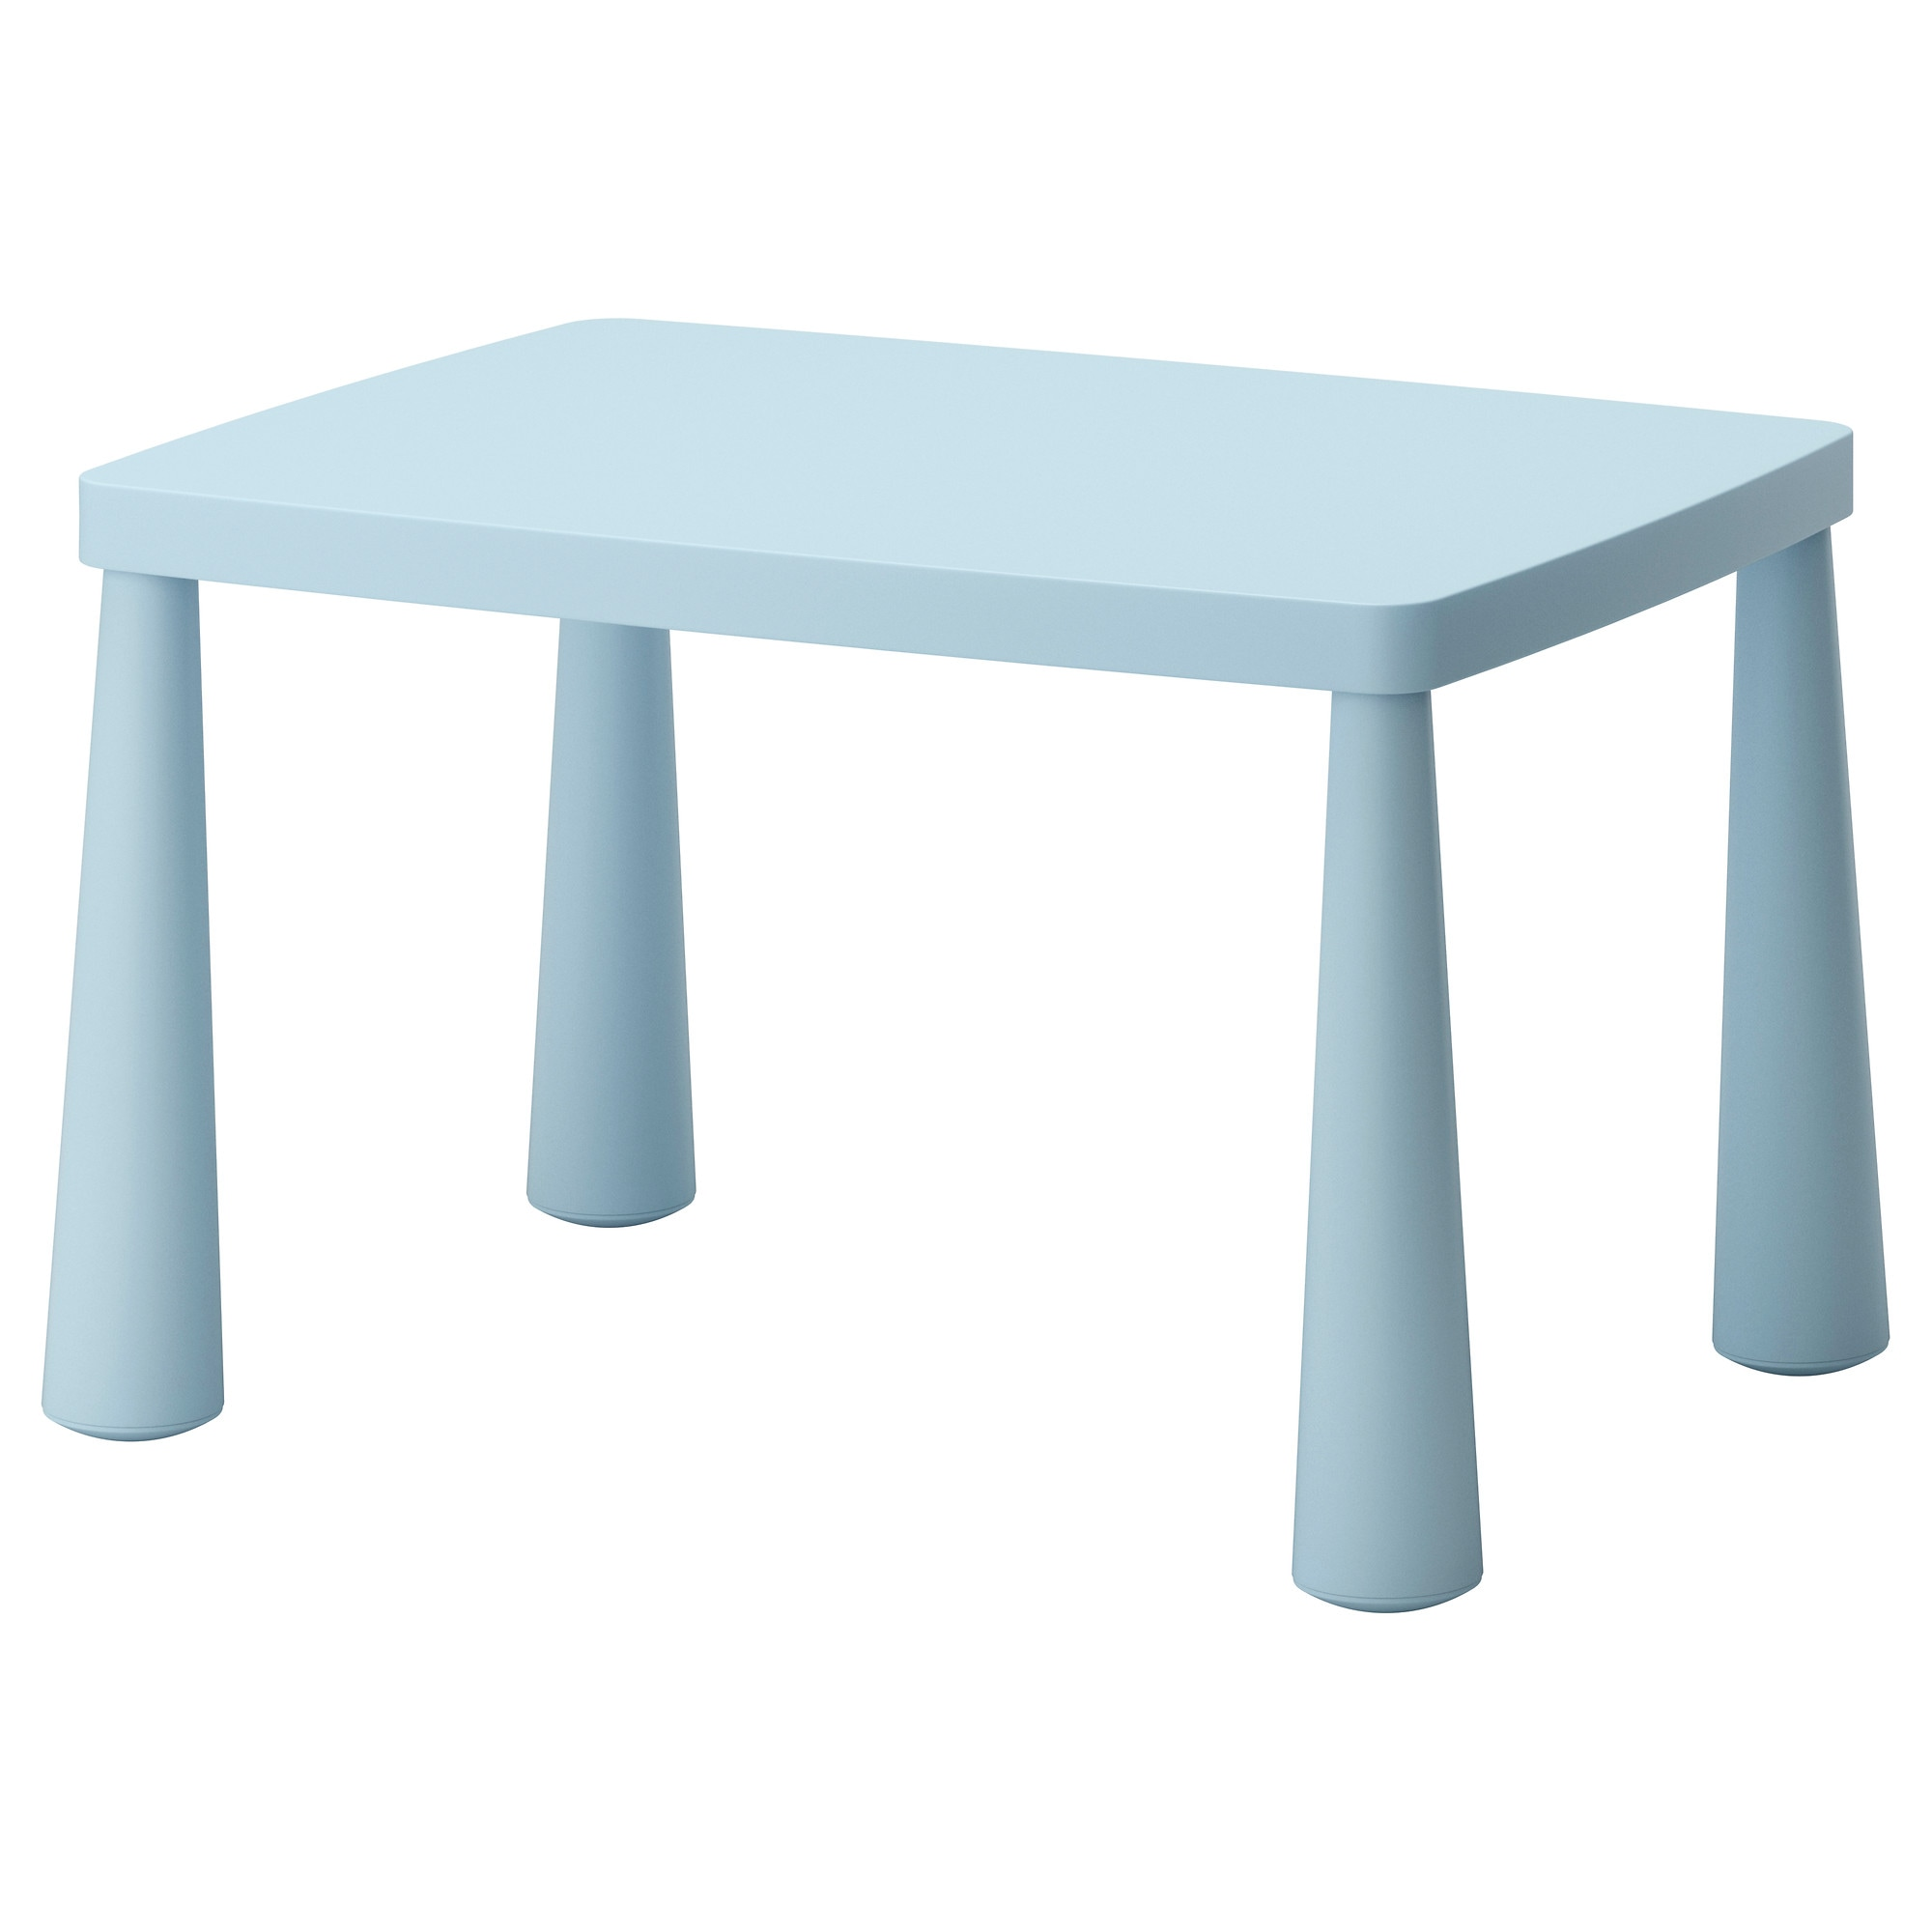 Table Furniture kids' tables & chairs - ikea